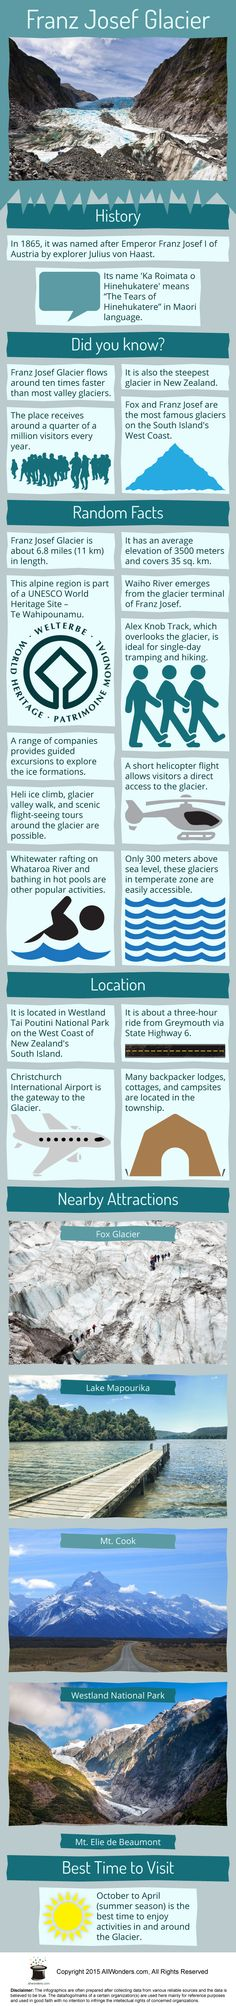 494e0aa1 Infographic showing facts and information about Franz Josef Glacier. This  gives you a comprehensive detail